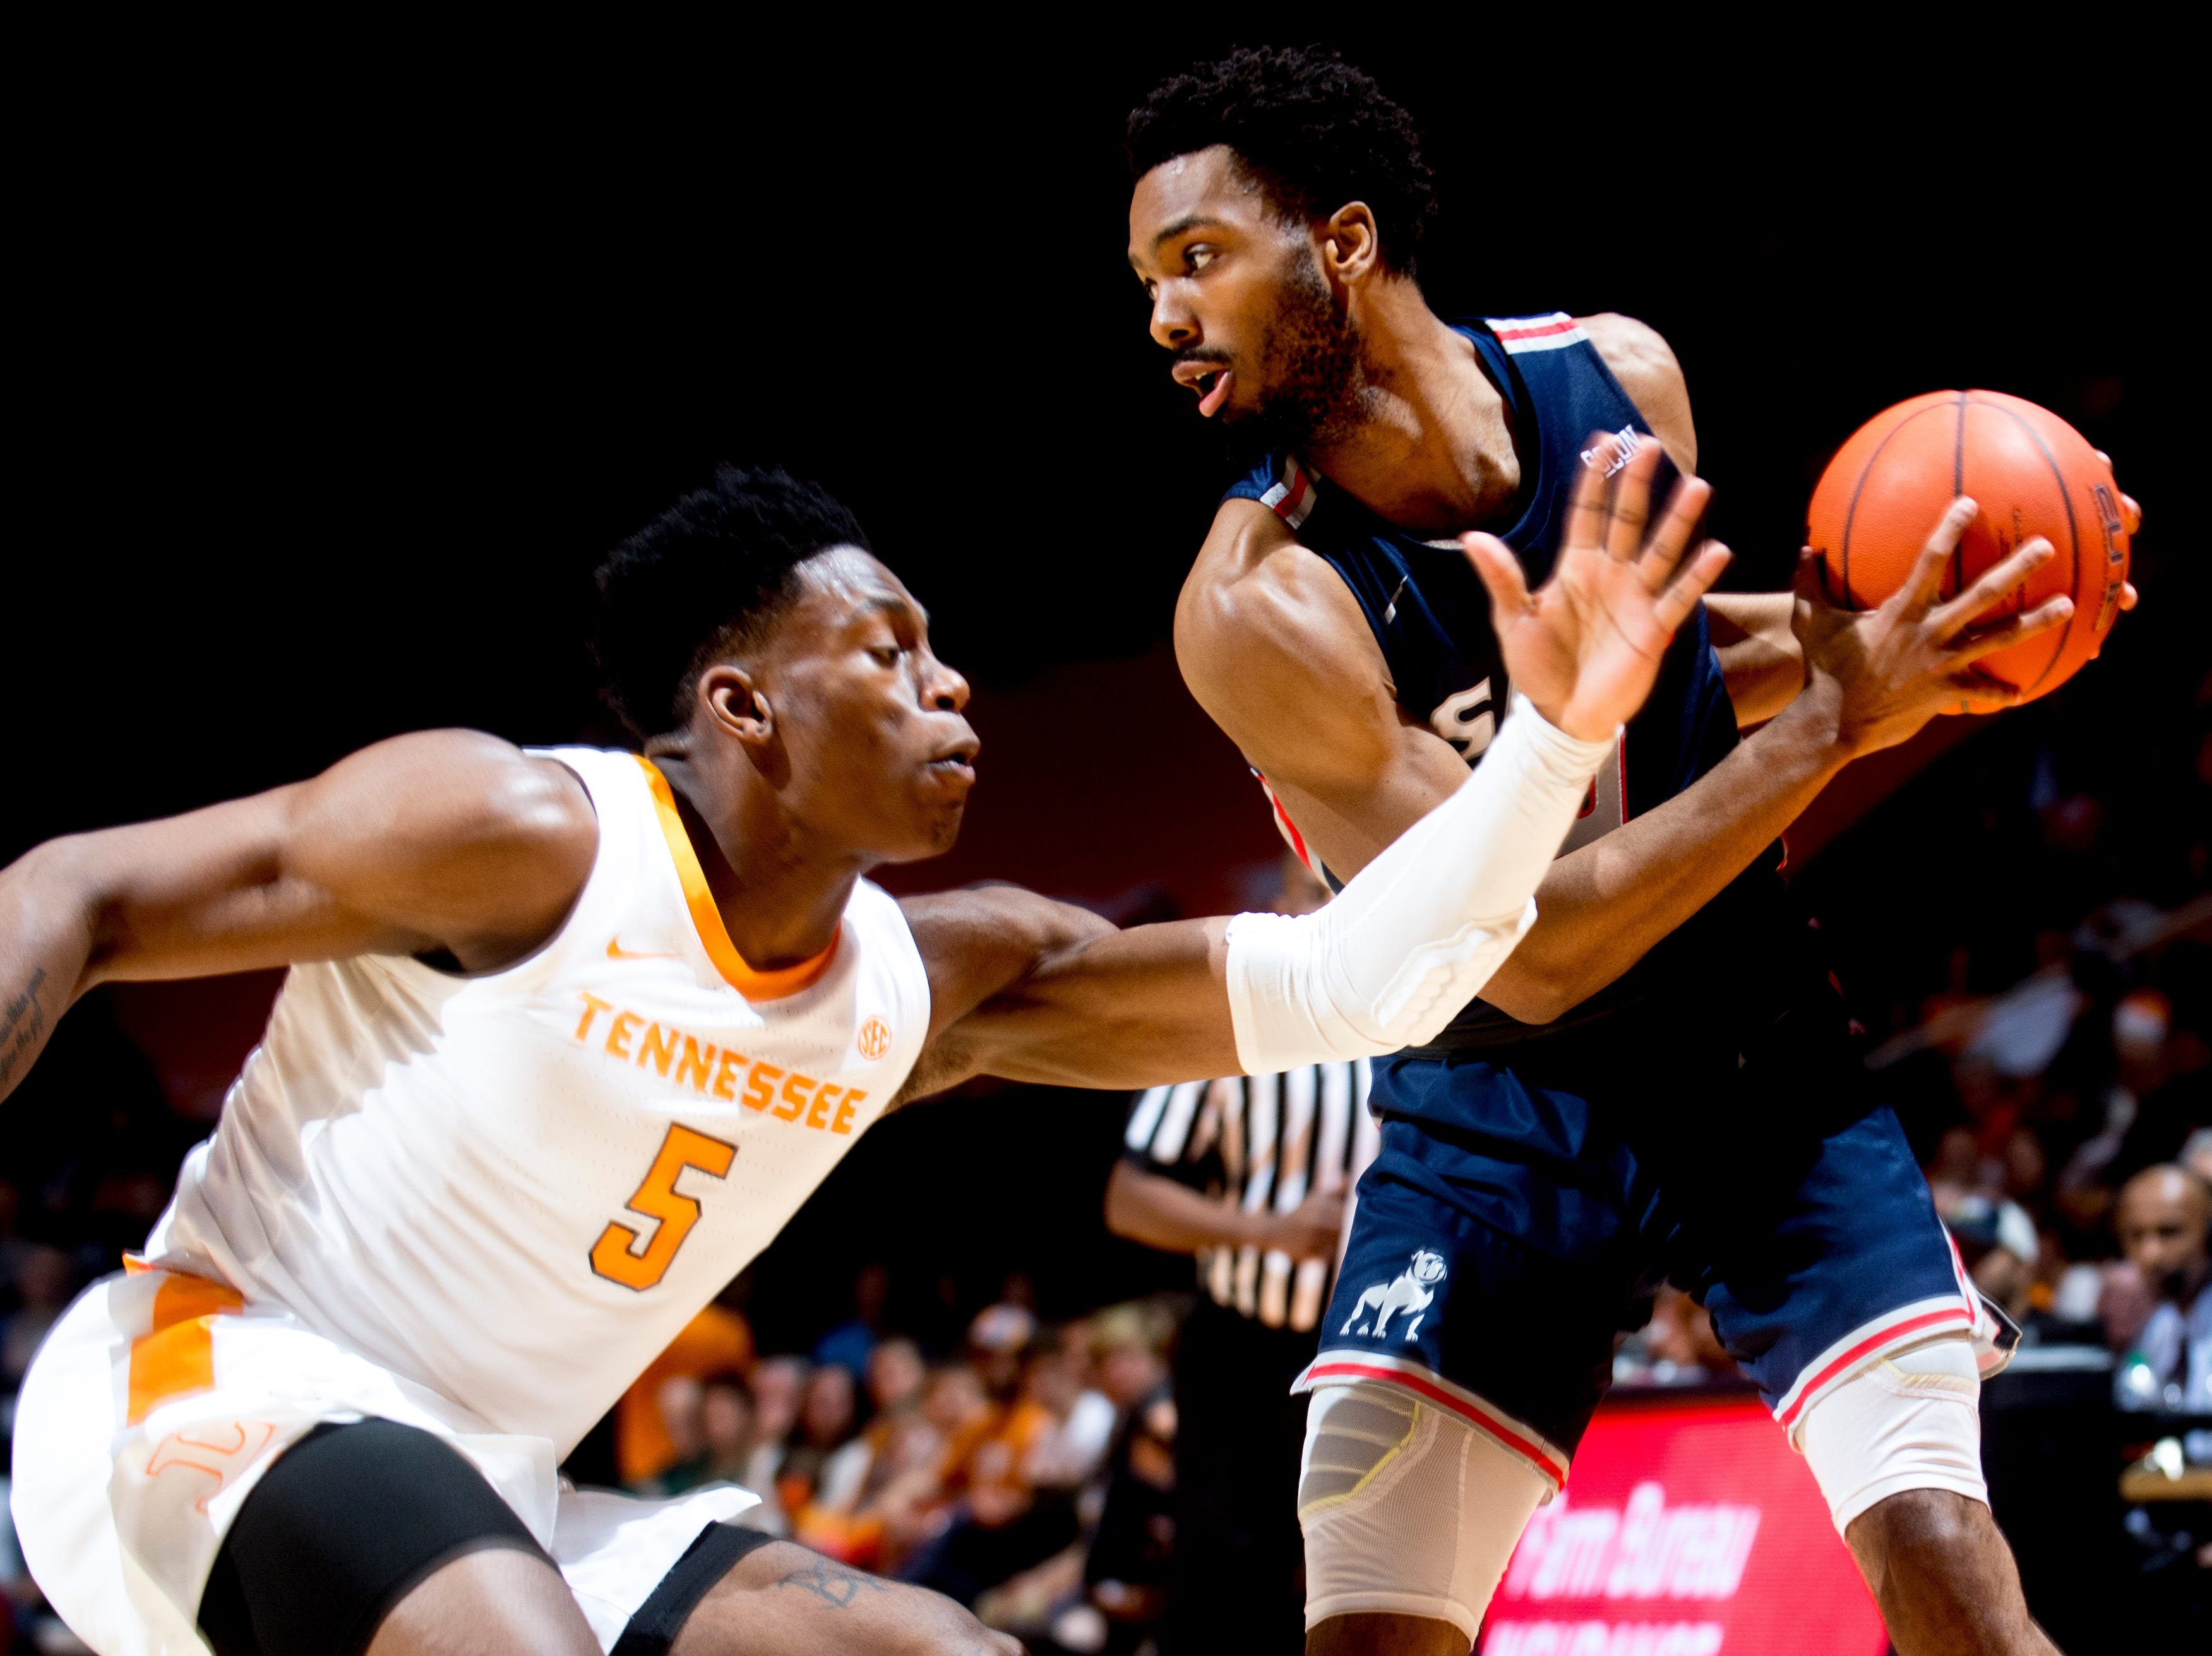 Tennessee guard Admiral Schofield (5) defends against Samford guard Myron Gordon (4) during a game between Tennessee and Samford at Thompson-Boling Arena in Knoxville, Tennessee on Wednesday, December 19, 2018.